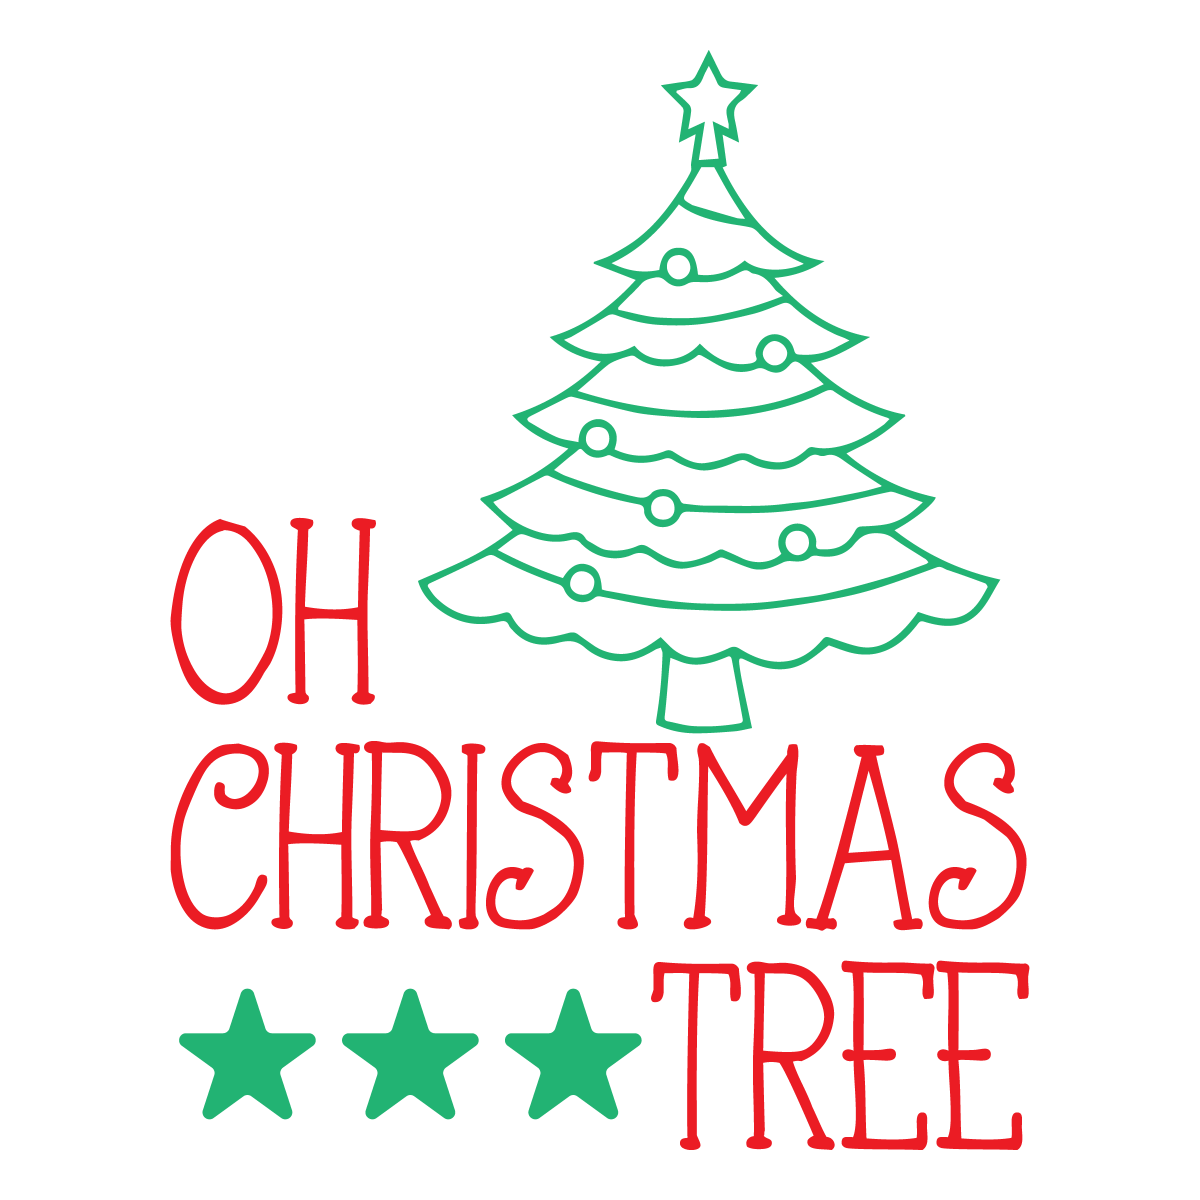 Free Christmas Svg Files Svg Eps Png Dxf Cut Files For Cricut And Silhouette Cameo By Savanasdesign